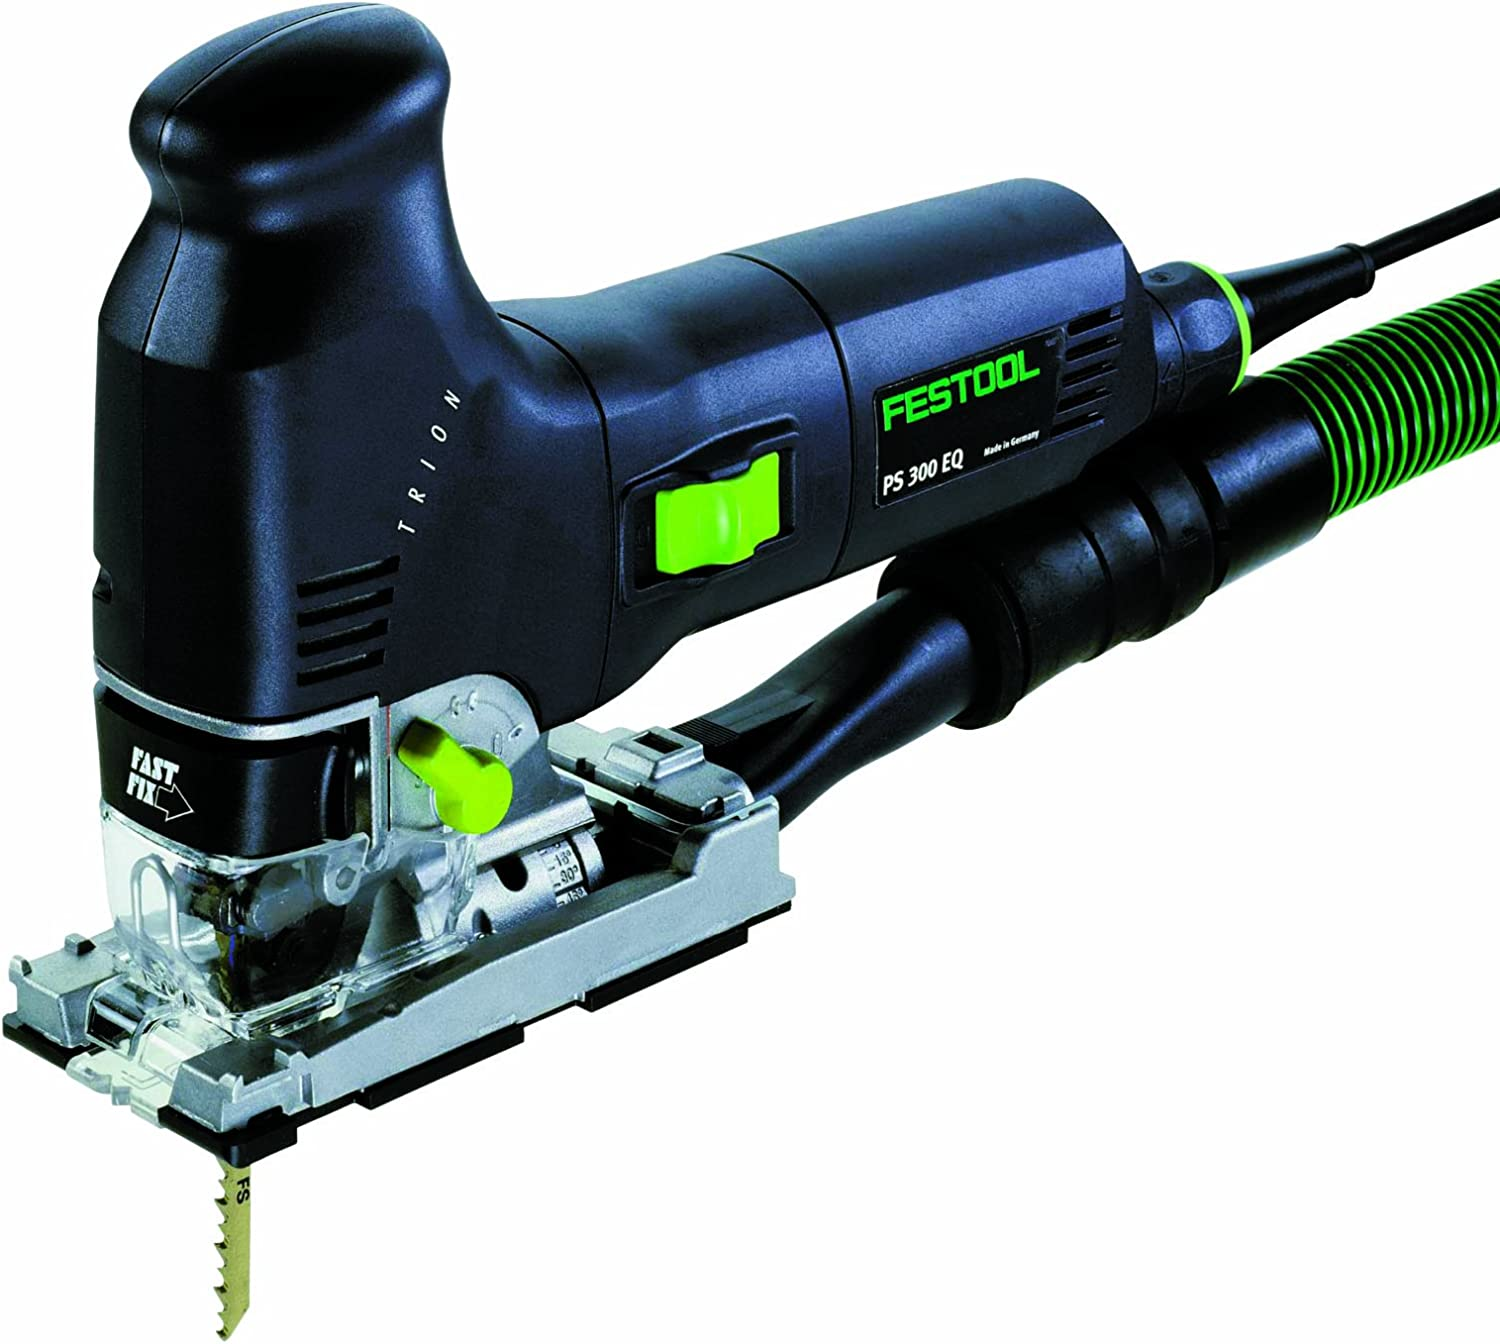 Festool 561443 PS 300 EQ